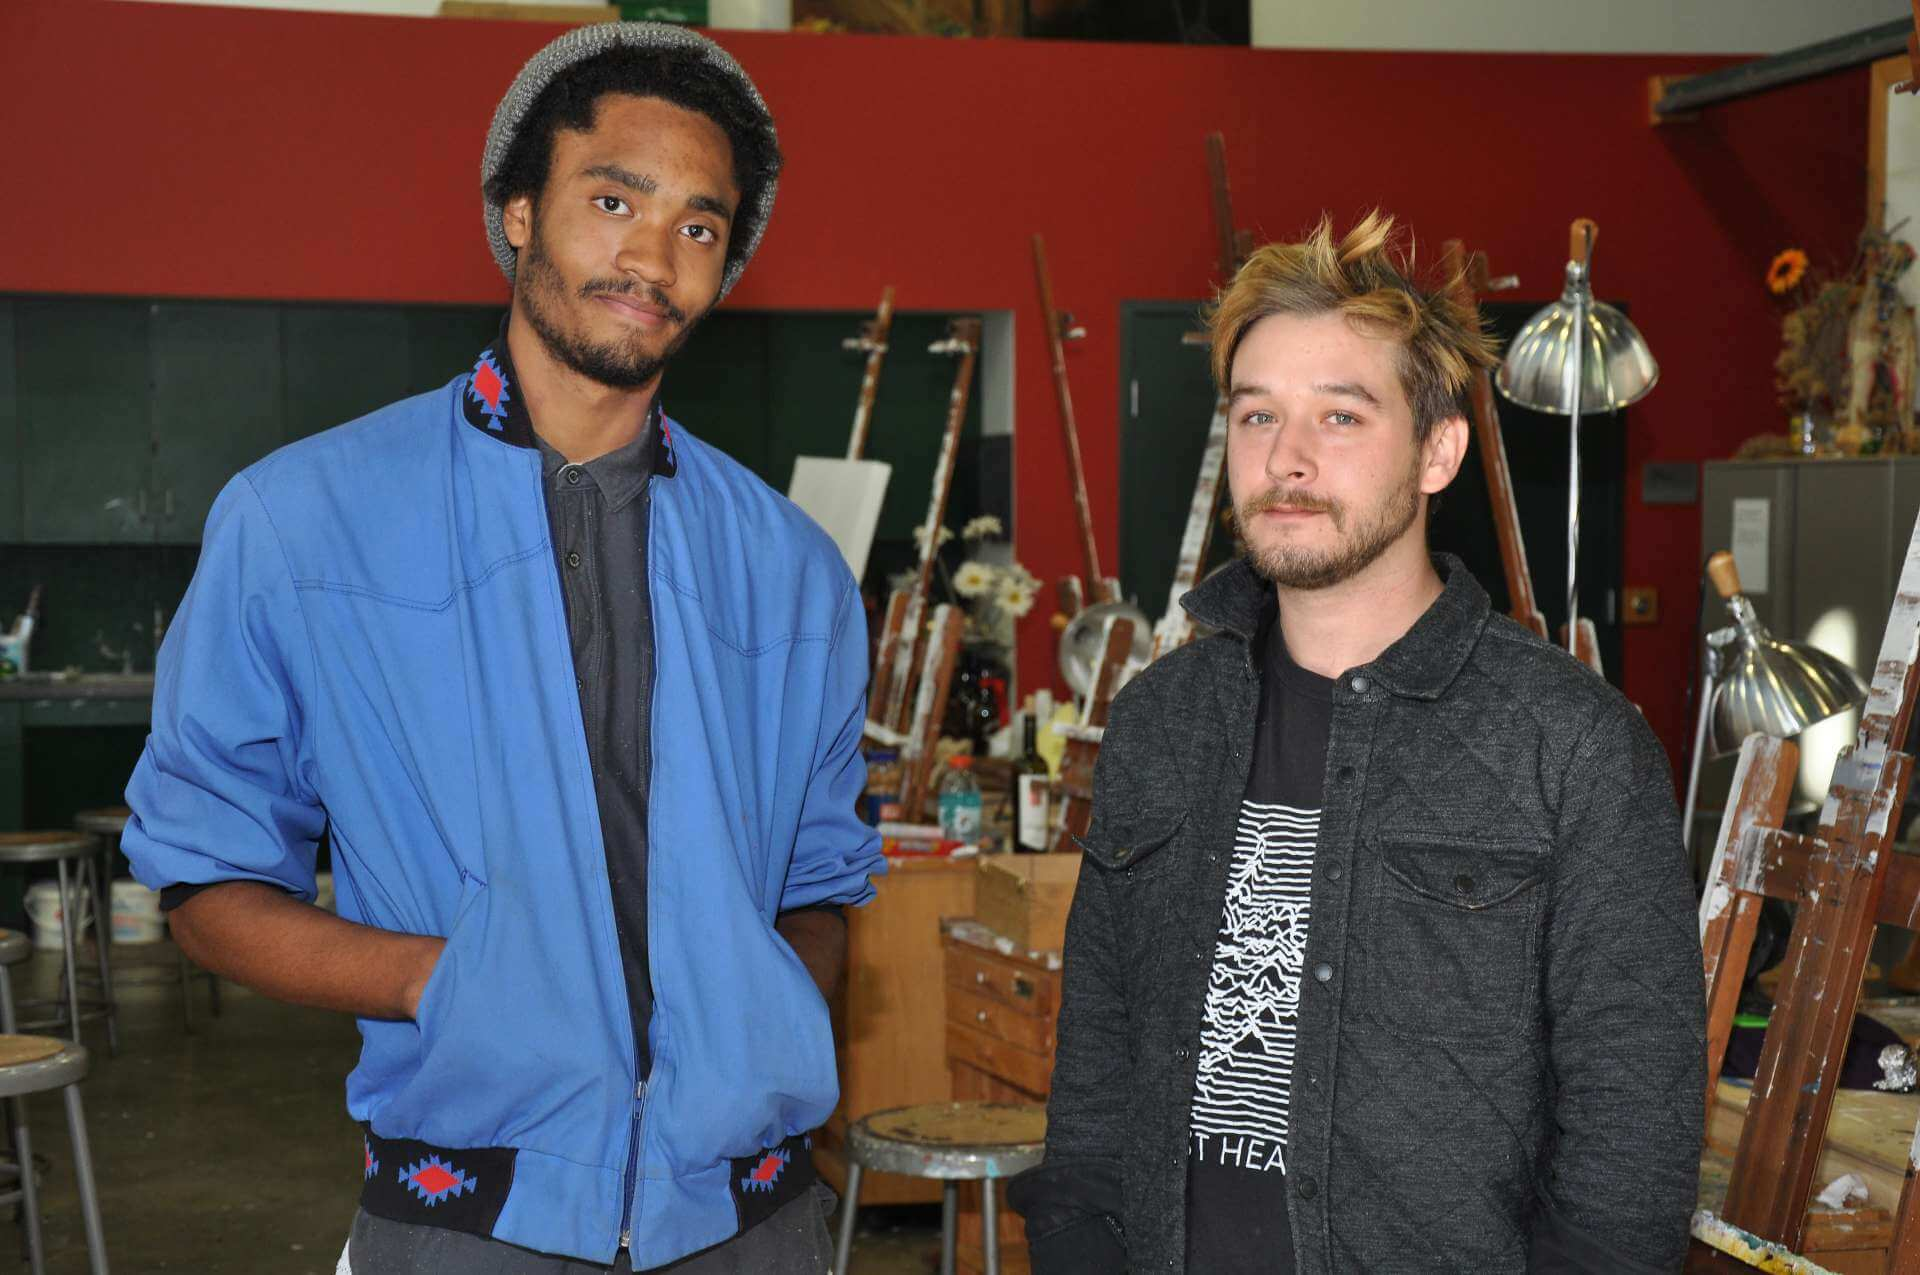 Work by Caliph Green (left), a junior art major from Winchester, Virginia, and Joshua Hawkins, a 2012 graduate, will be included in an exhibit sponsored by Tamarack at the Roberts. C. Byrd United States Courthouse in Charleston December 2-Februrary 29.